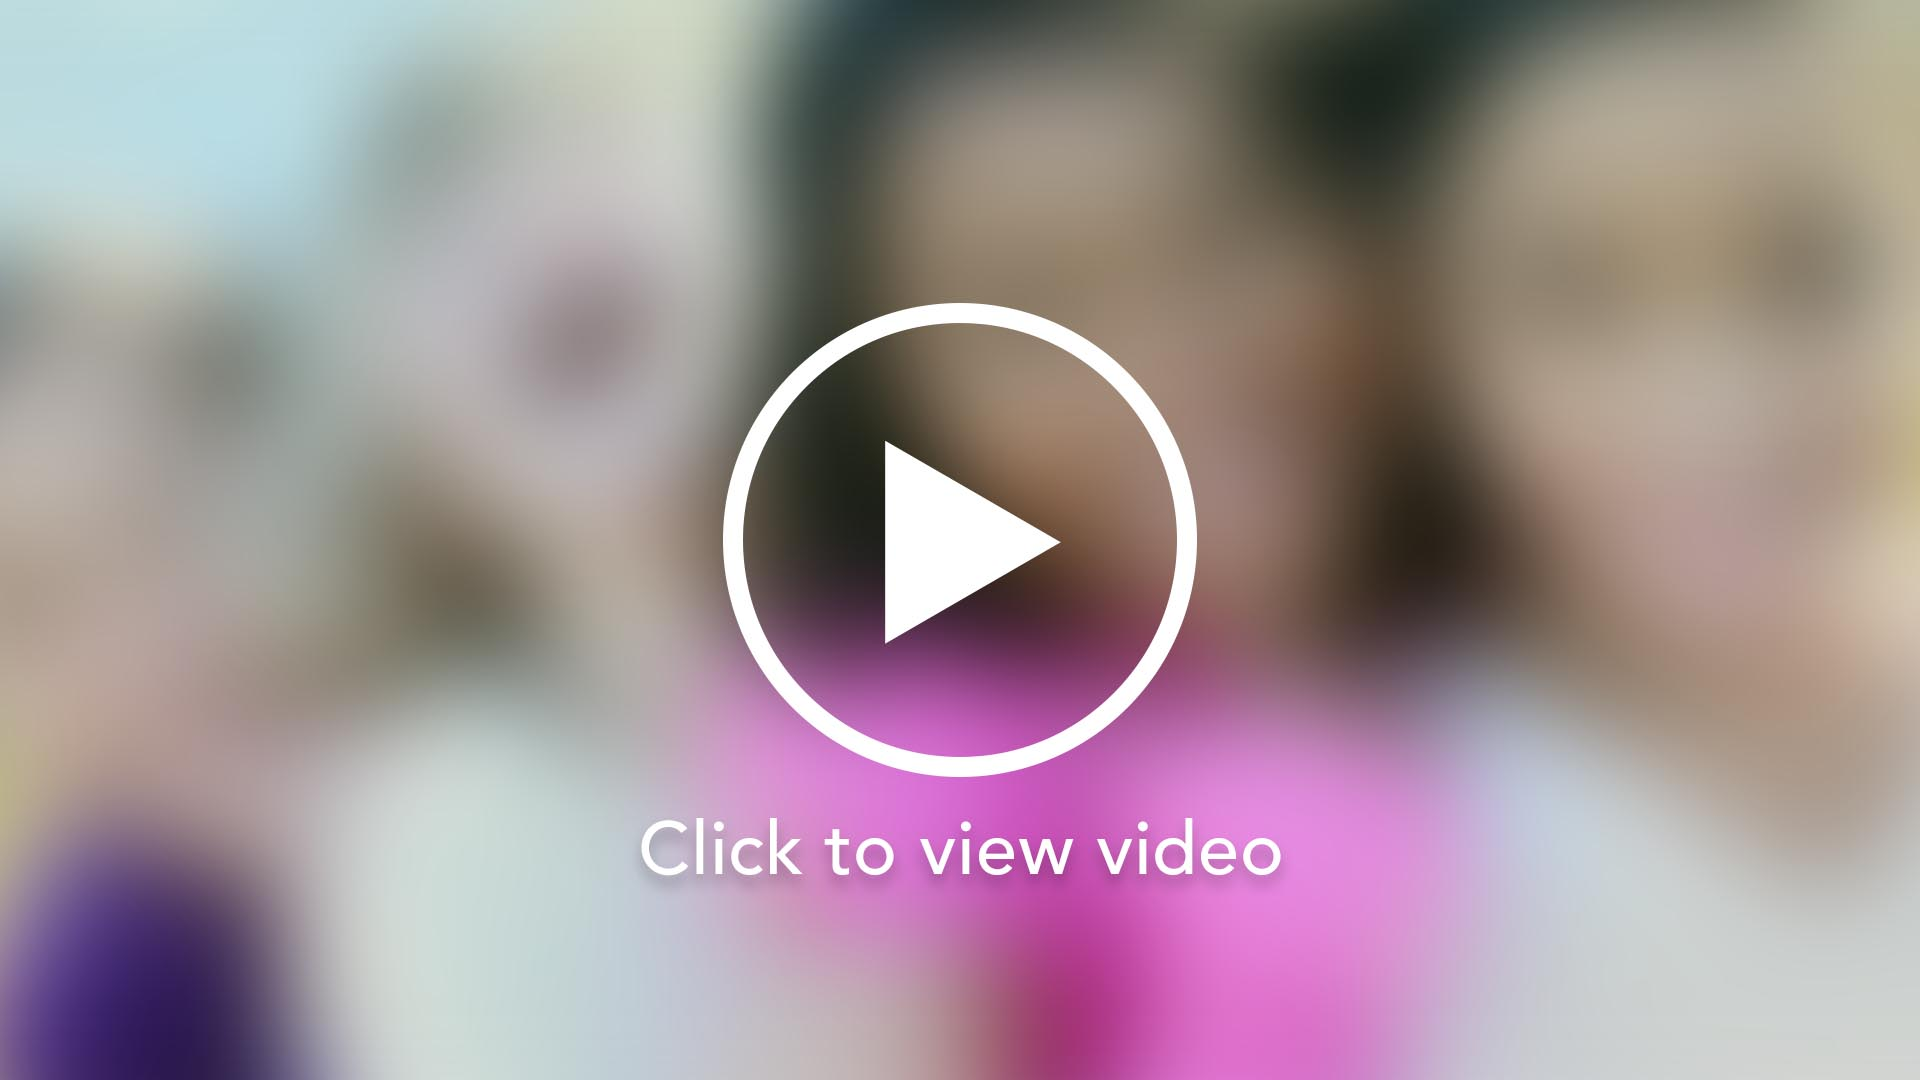 Placeholder image for video